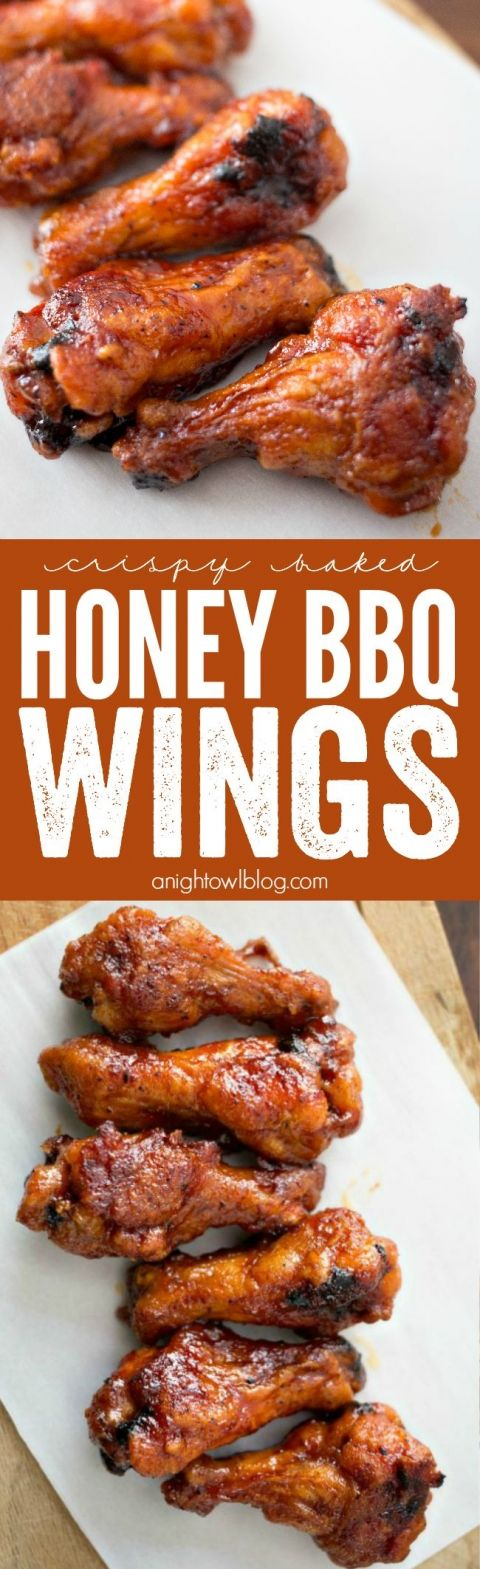 Baked Honey BBQ Wings | Recipe | Honey Bbq Wings, Bbq Wings and Wings ...